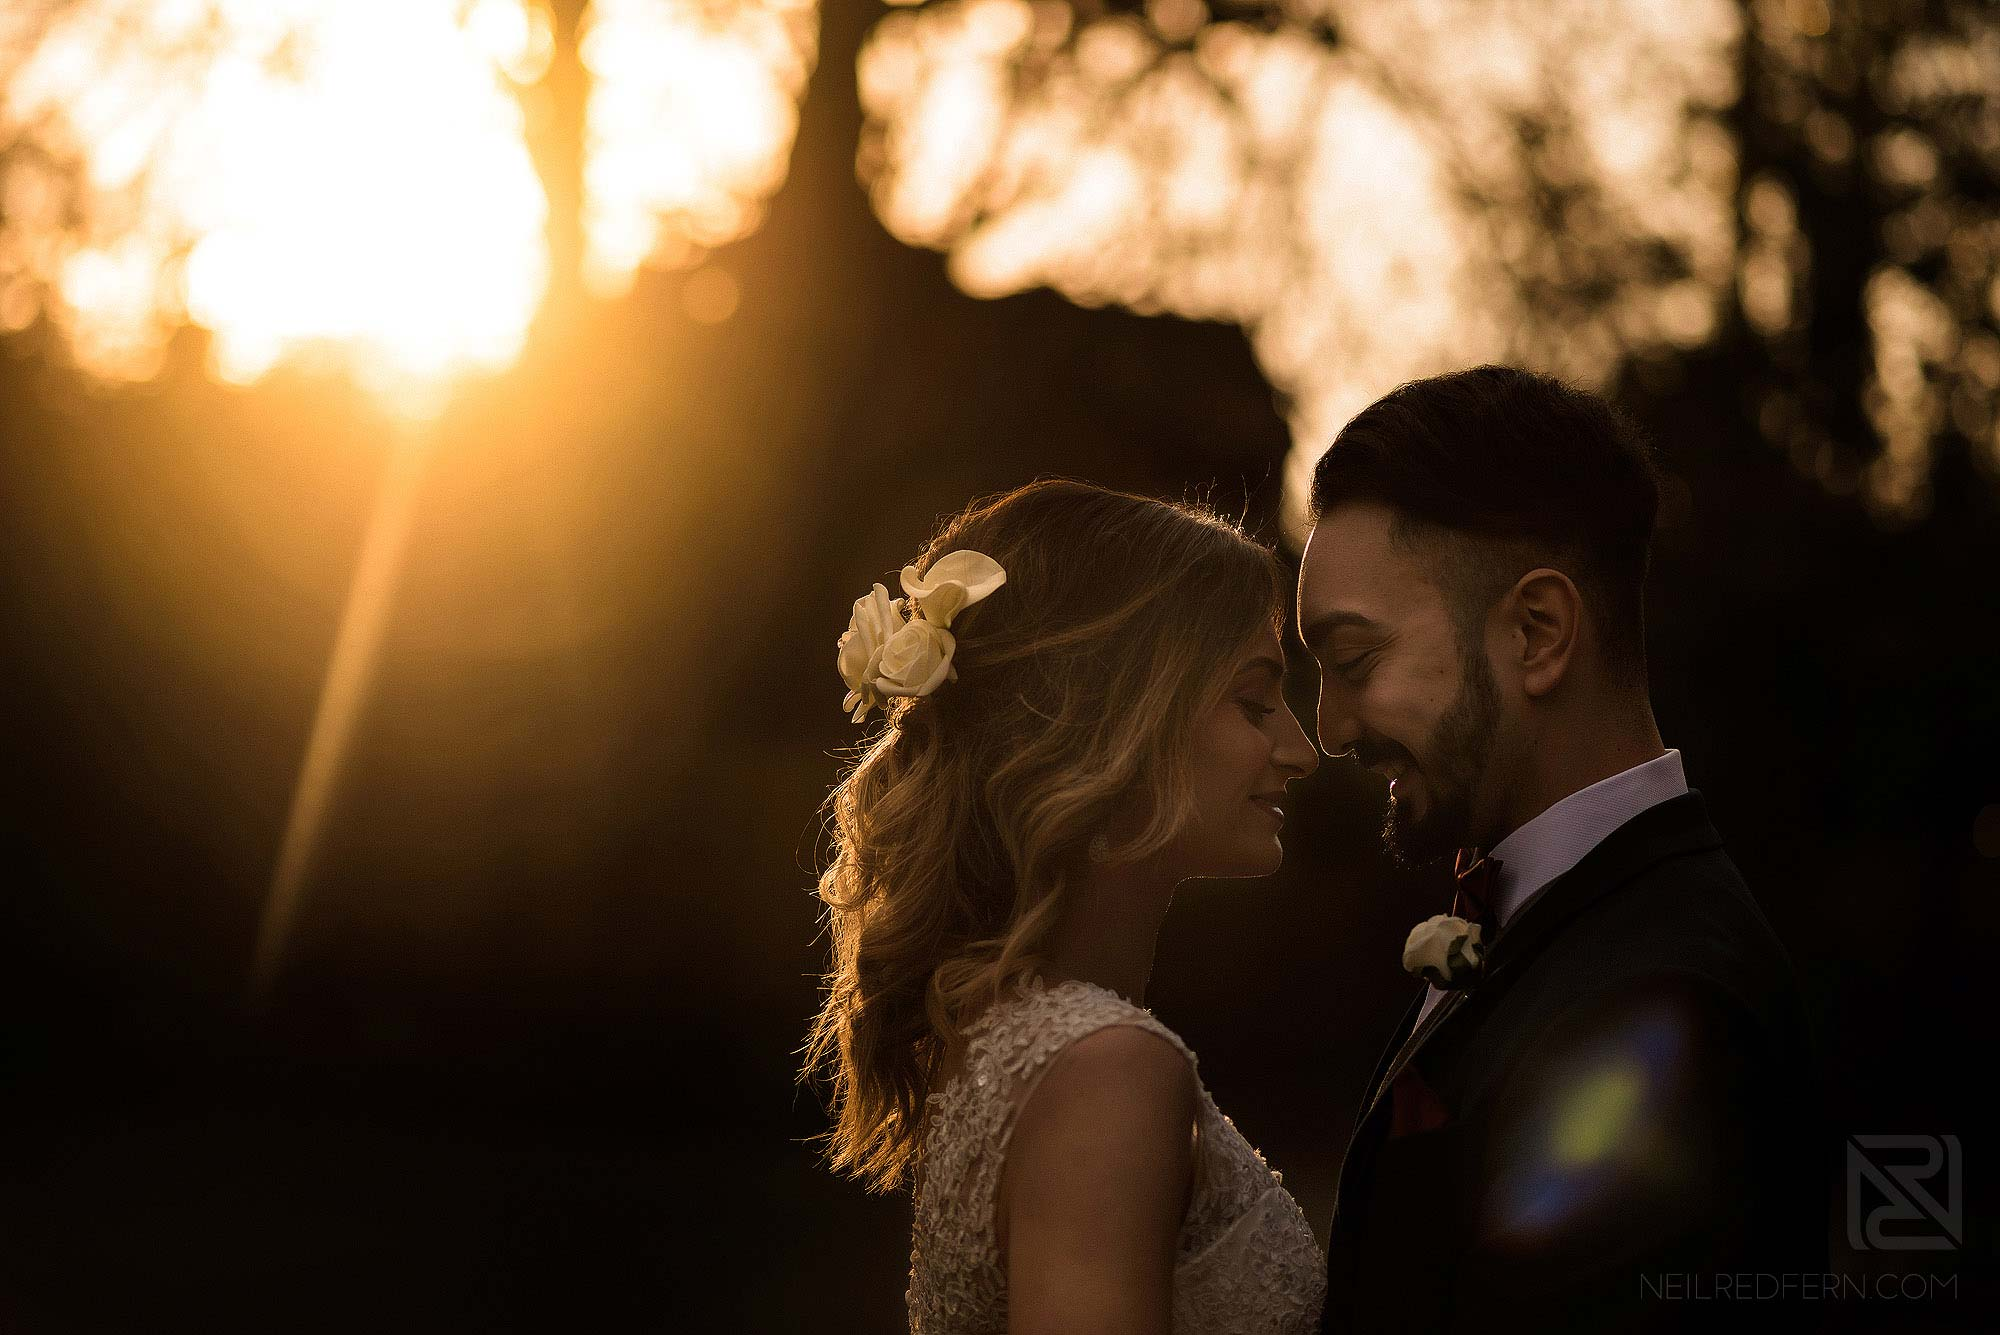 photograph of bride and groom taken at sunset